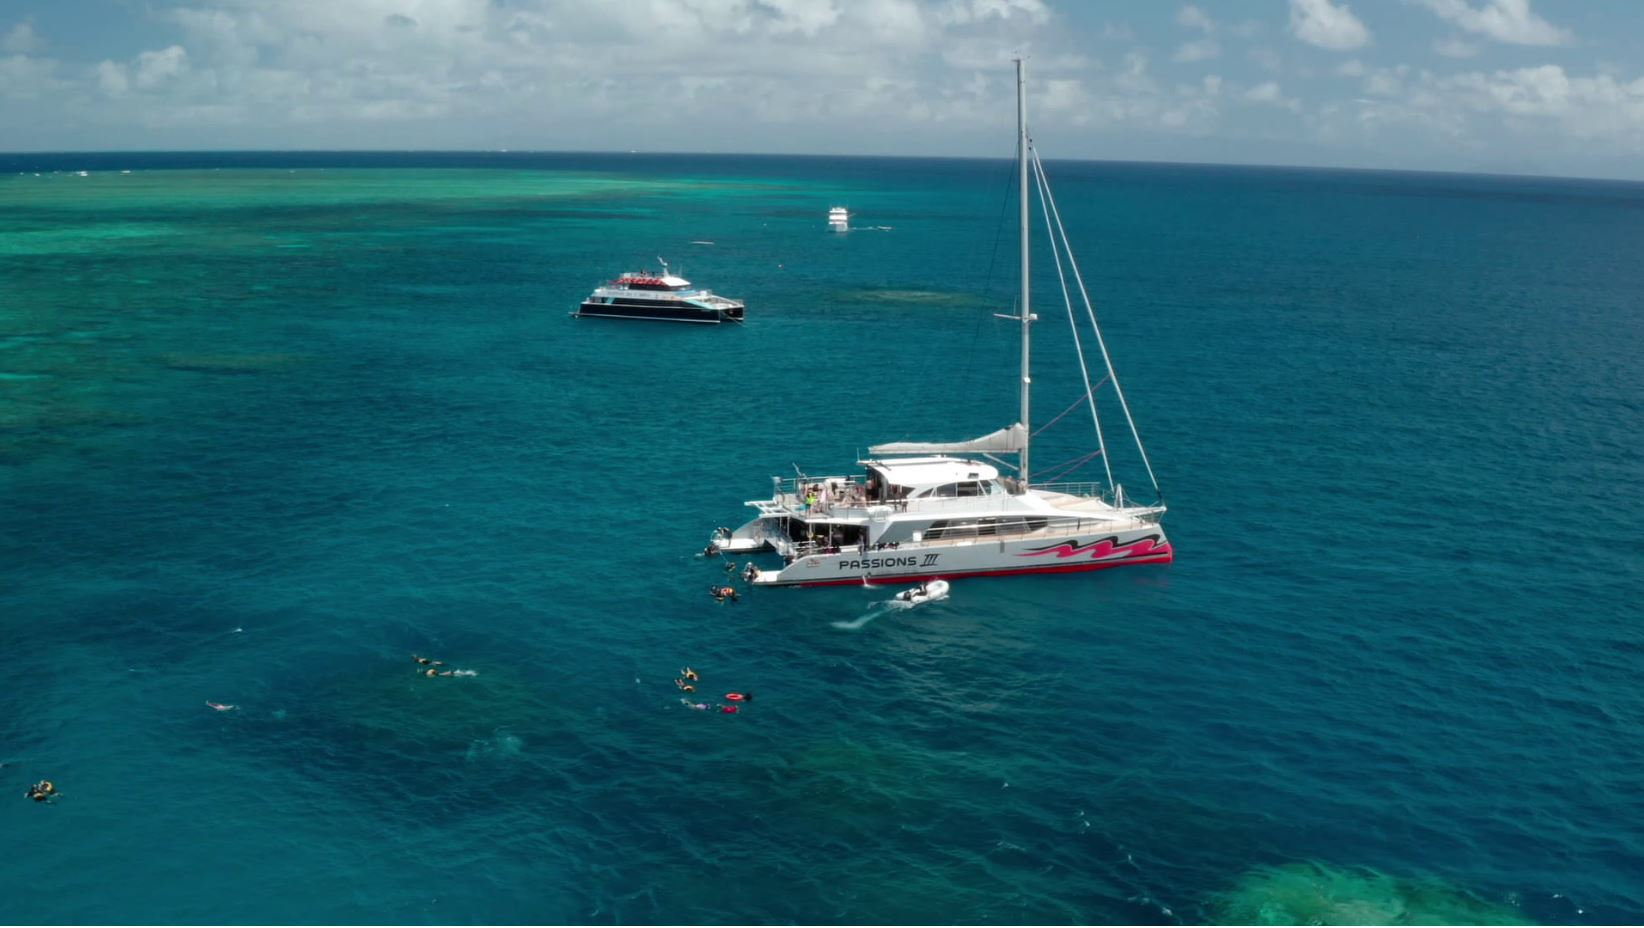 Passions of Paradise, Dreamtime Dive & Snorkel, Aroona Luxury Boat Charters together at Milln Reef to kick off Great Reef Census (must credit_ Citizens of the Great Barrier Reef)